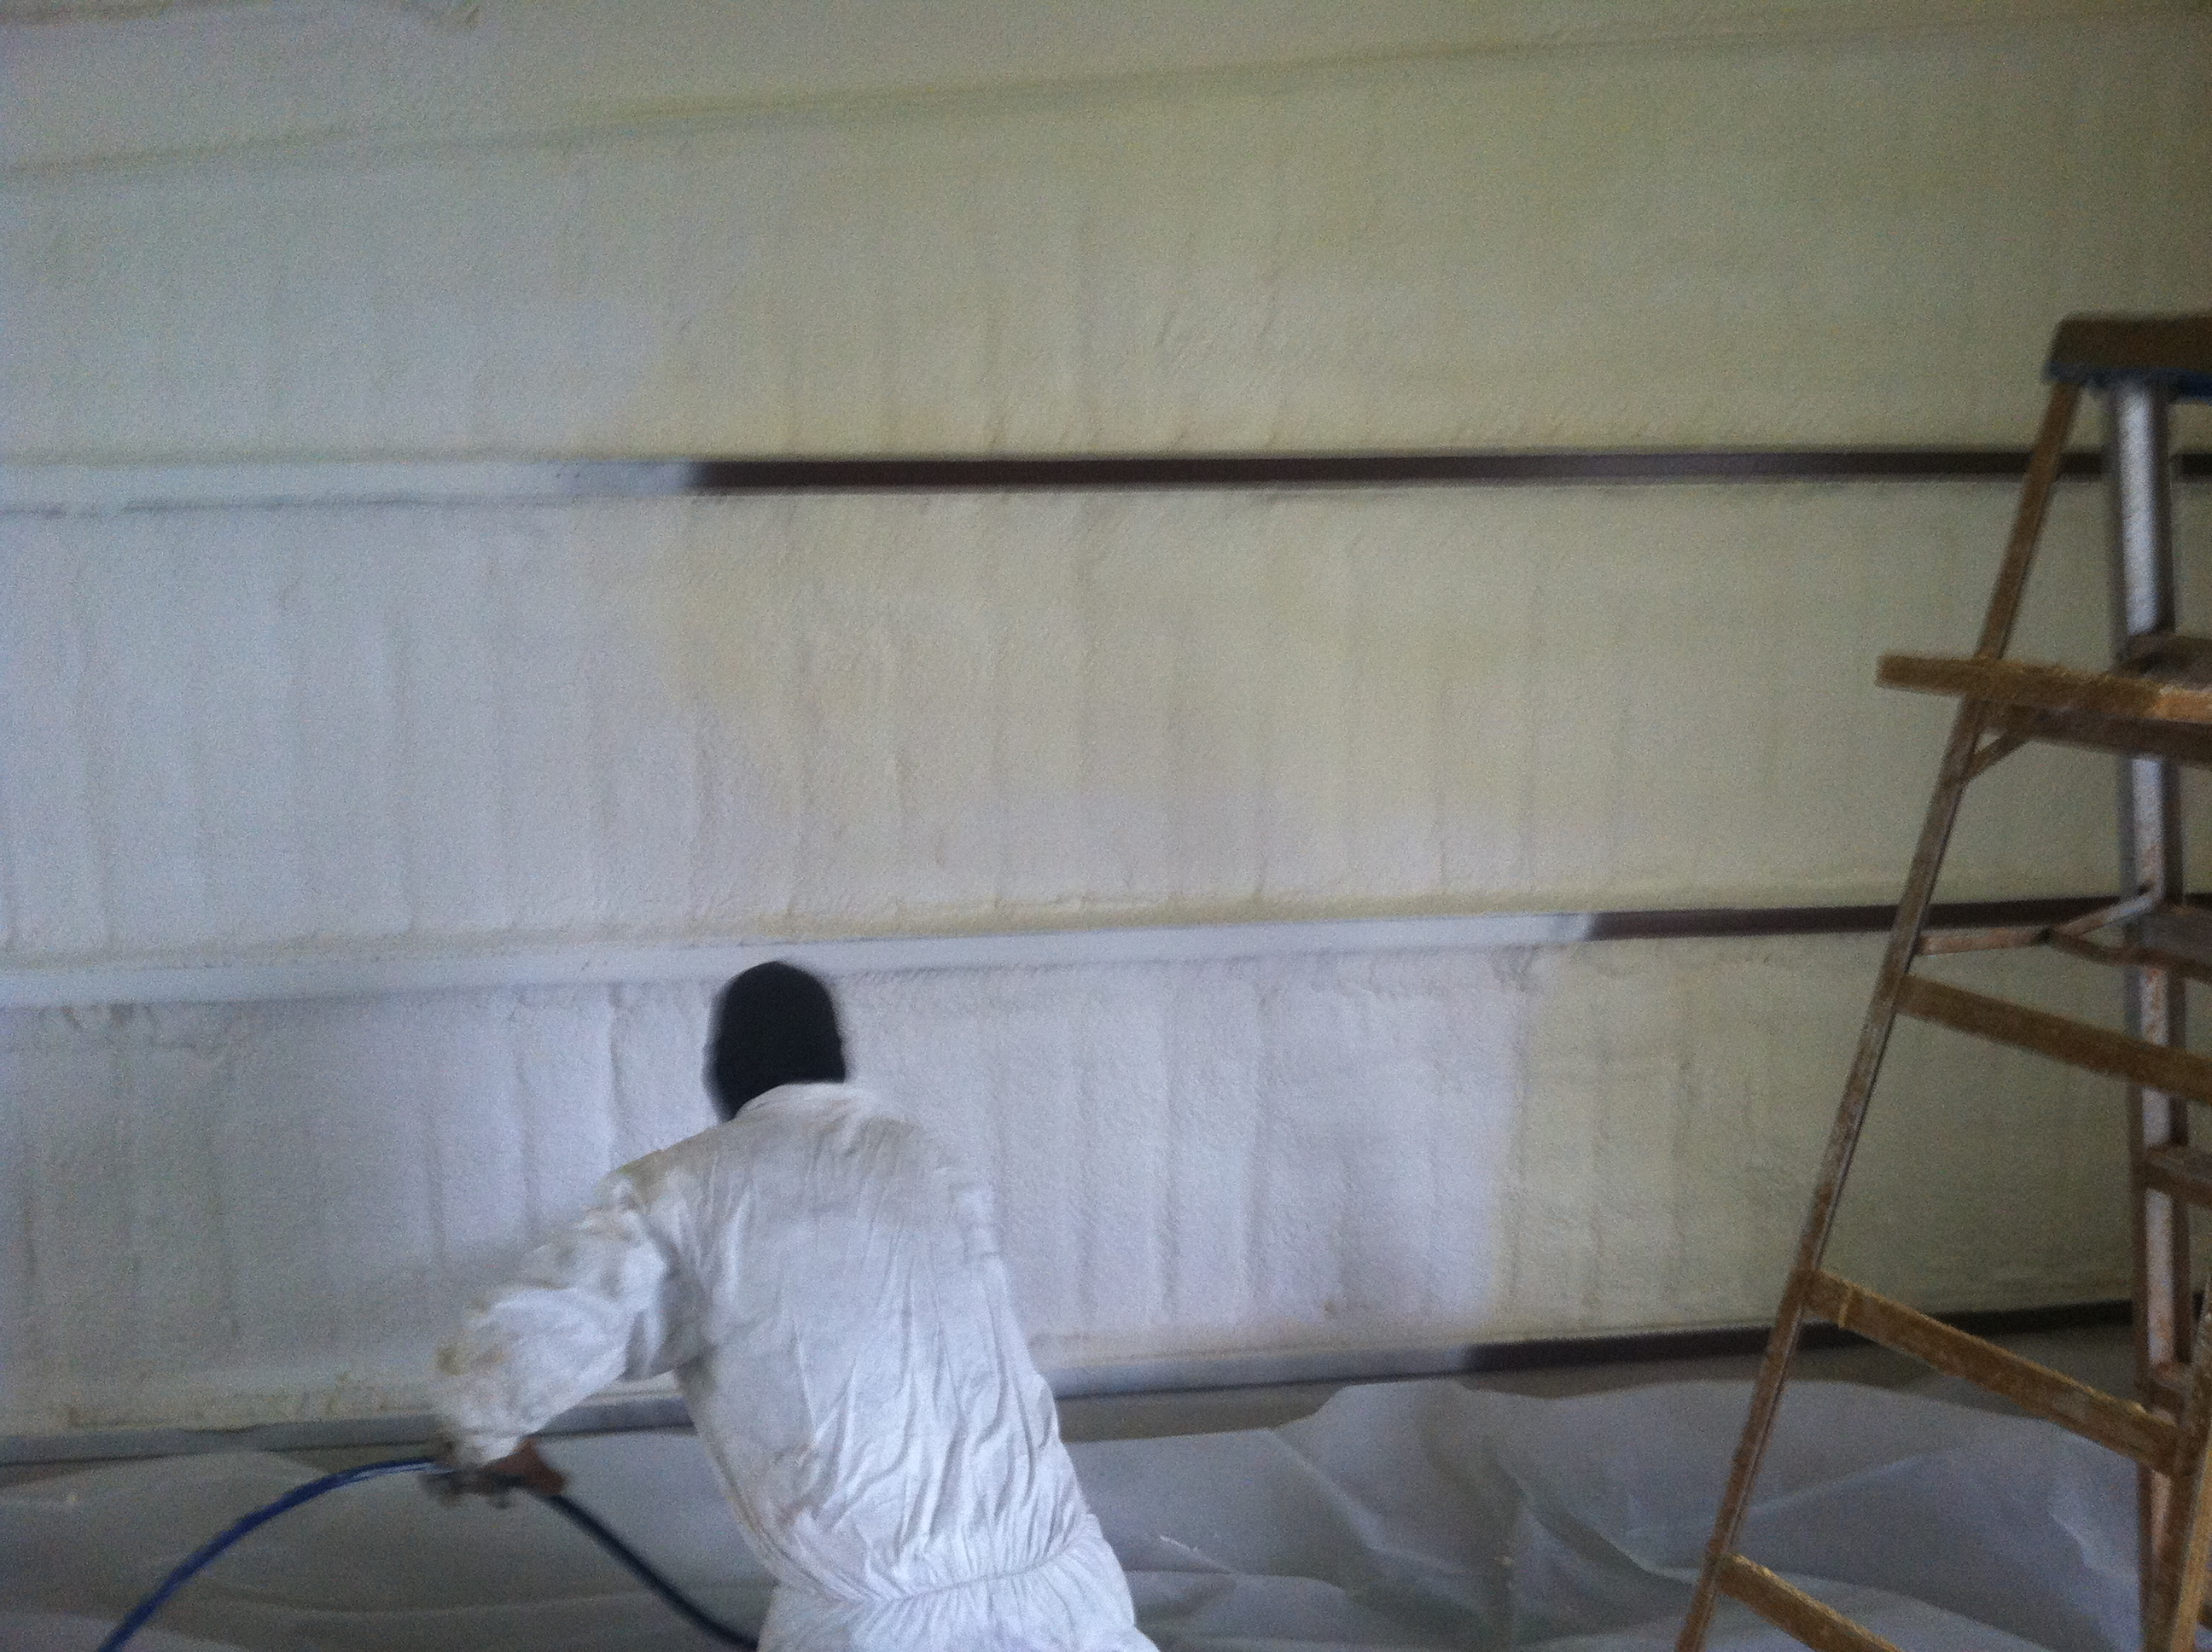 Spray foam insulation pictures j l cox enterprises 512 - What temperature can you paint outside ...